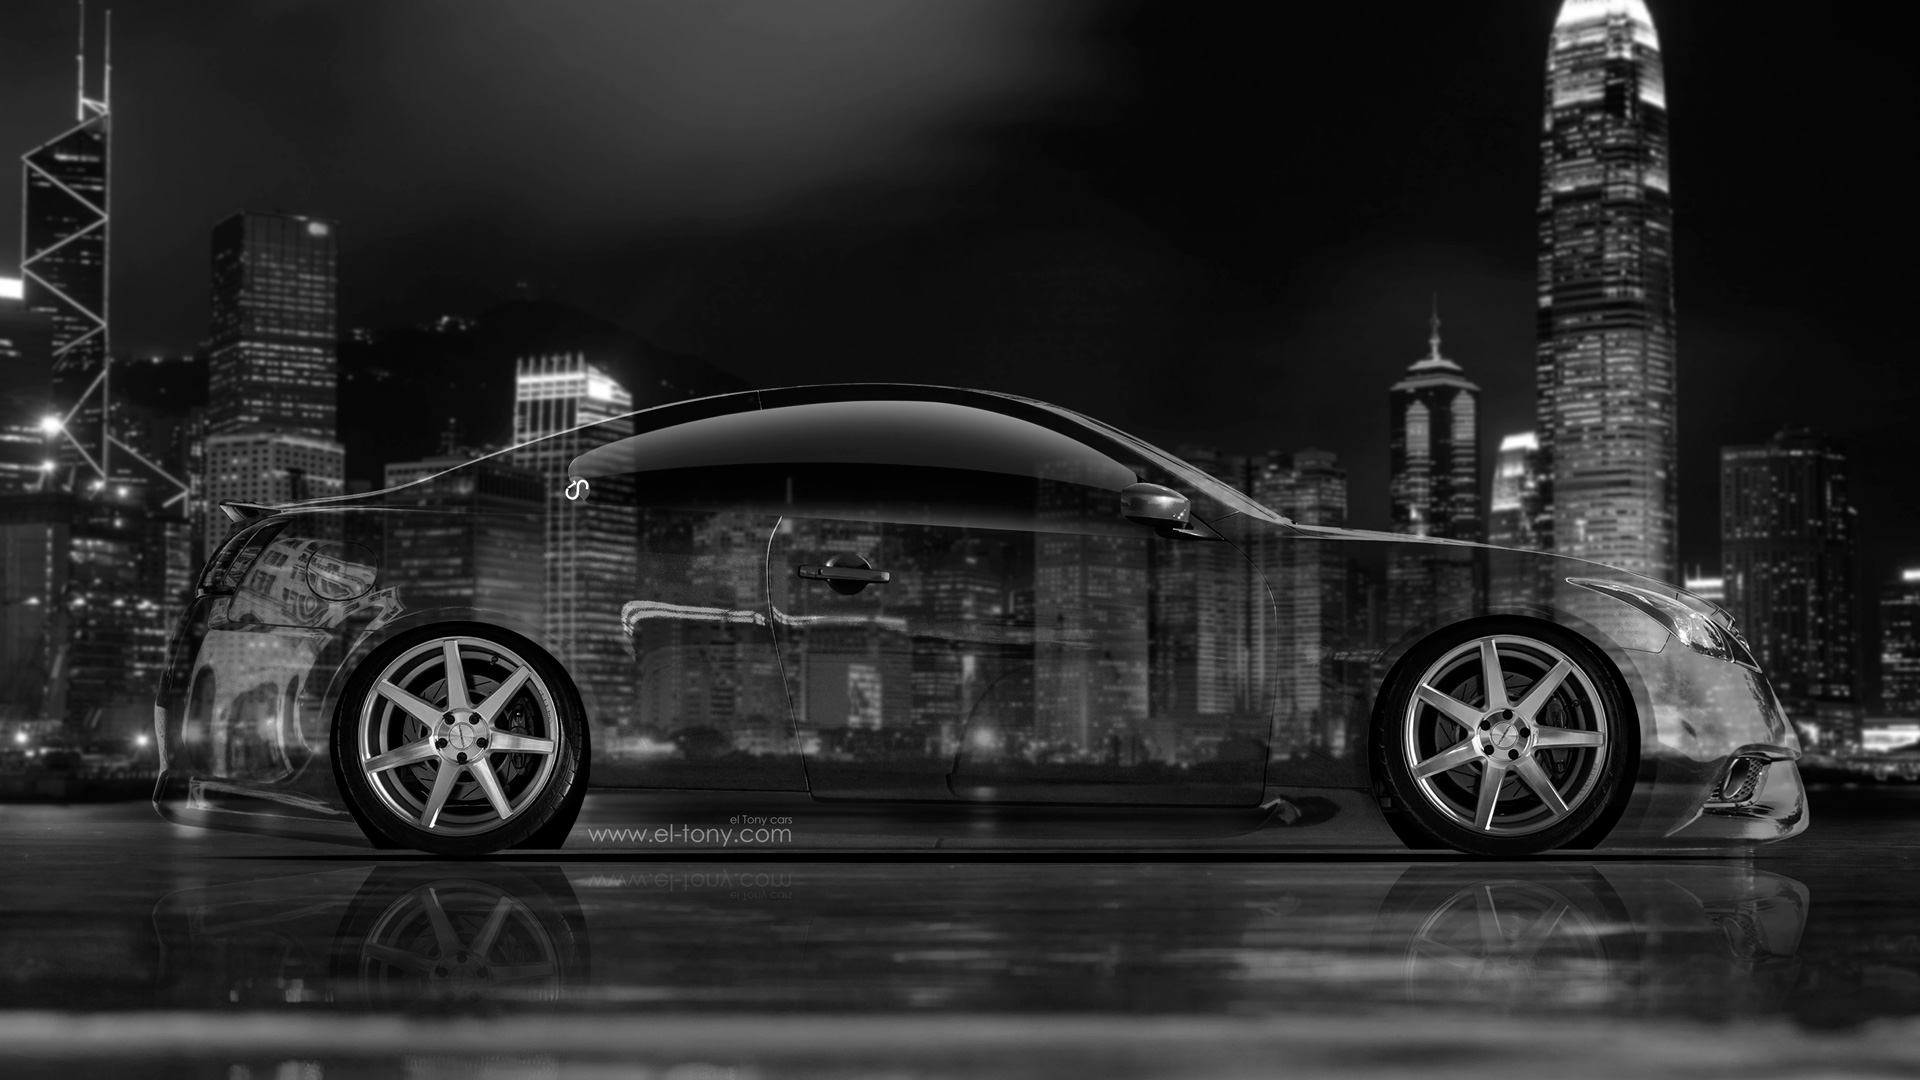 Ordinaire Infiniti G37 Side Crystal City Car 2014 Photoshop